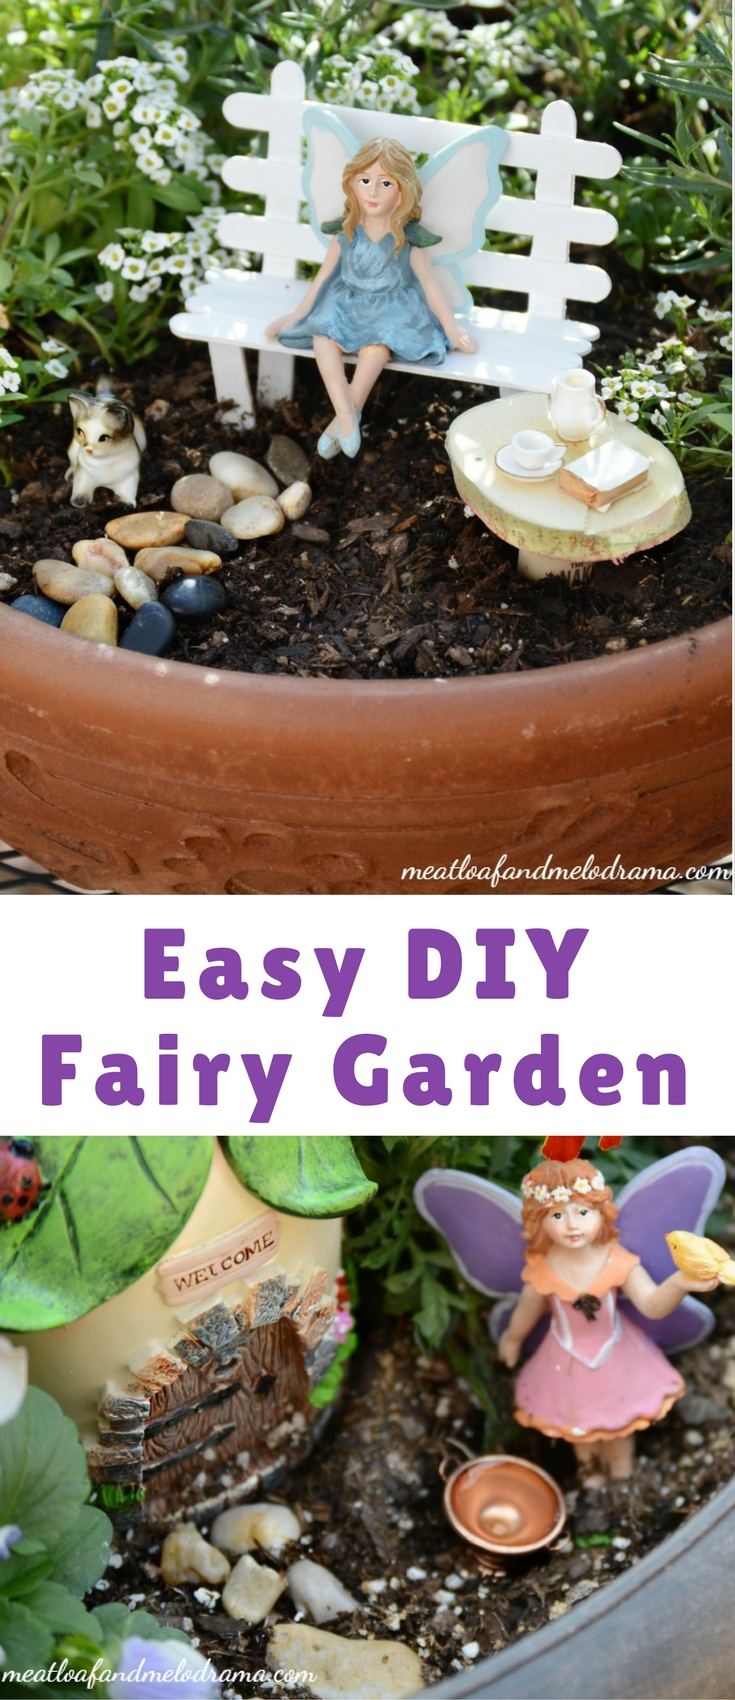 Diverting This Easy Diy Fairy Garden Is So To Make Kids Party Diy Fairy Gardens Take Up Easy Diy Fairy Garden Blogger S Diy Fairy Garden Kids To Make garden Diy Fairy Garden For Kids